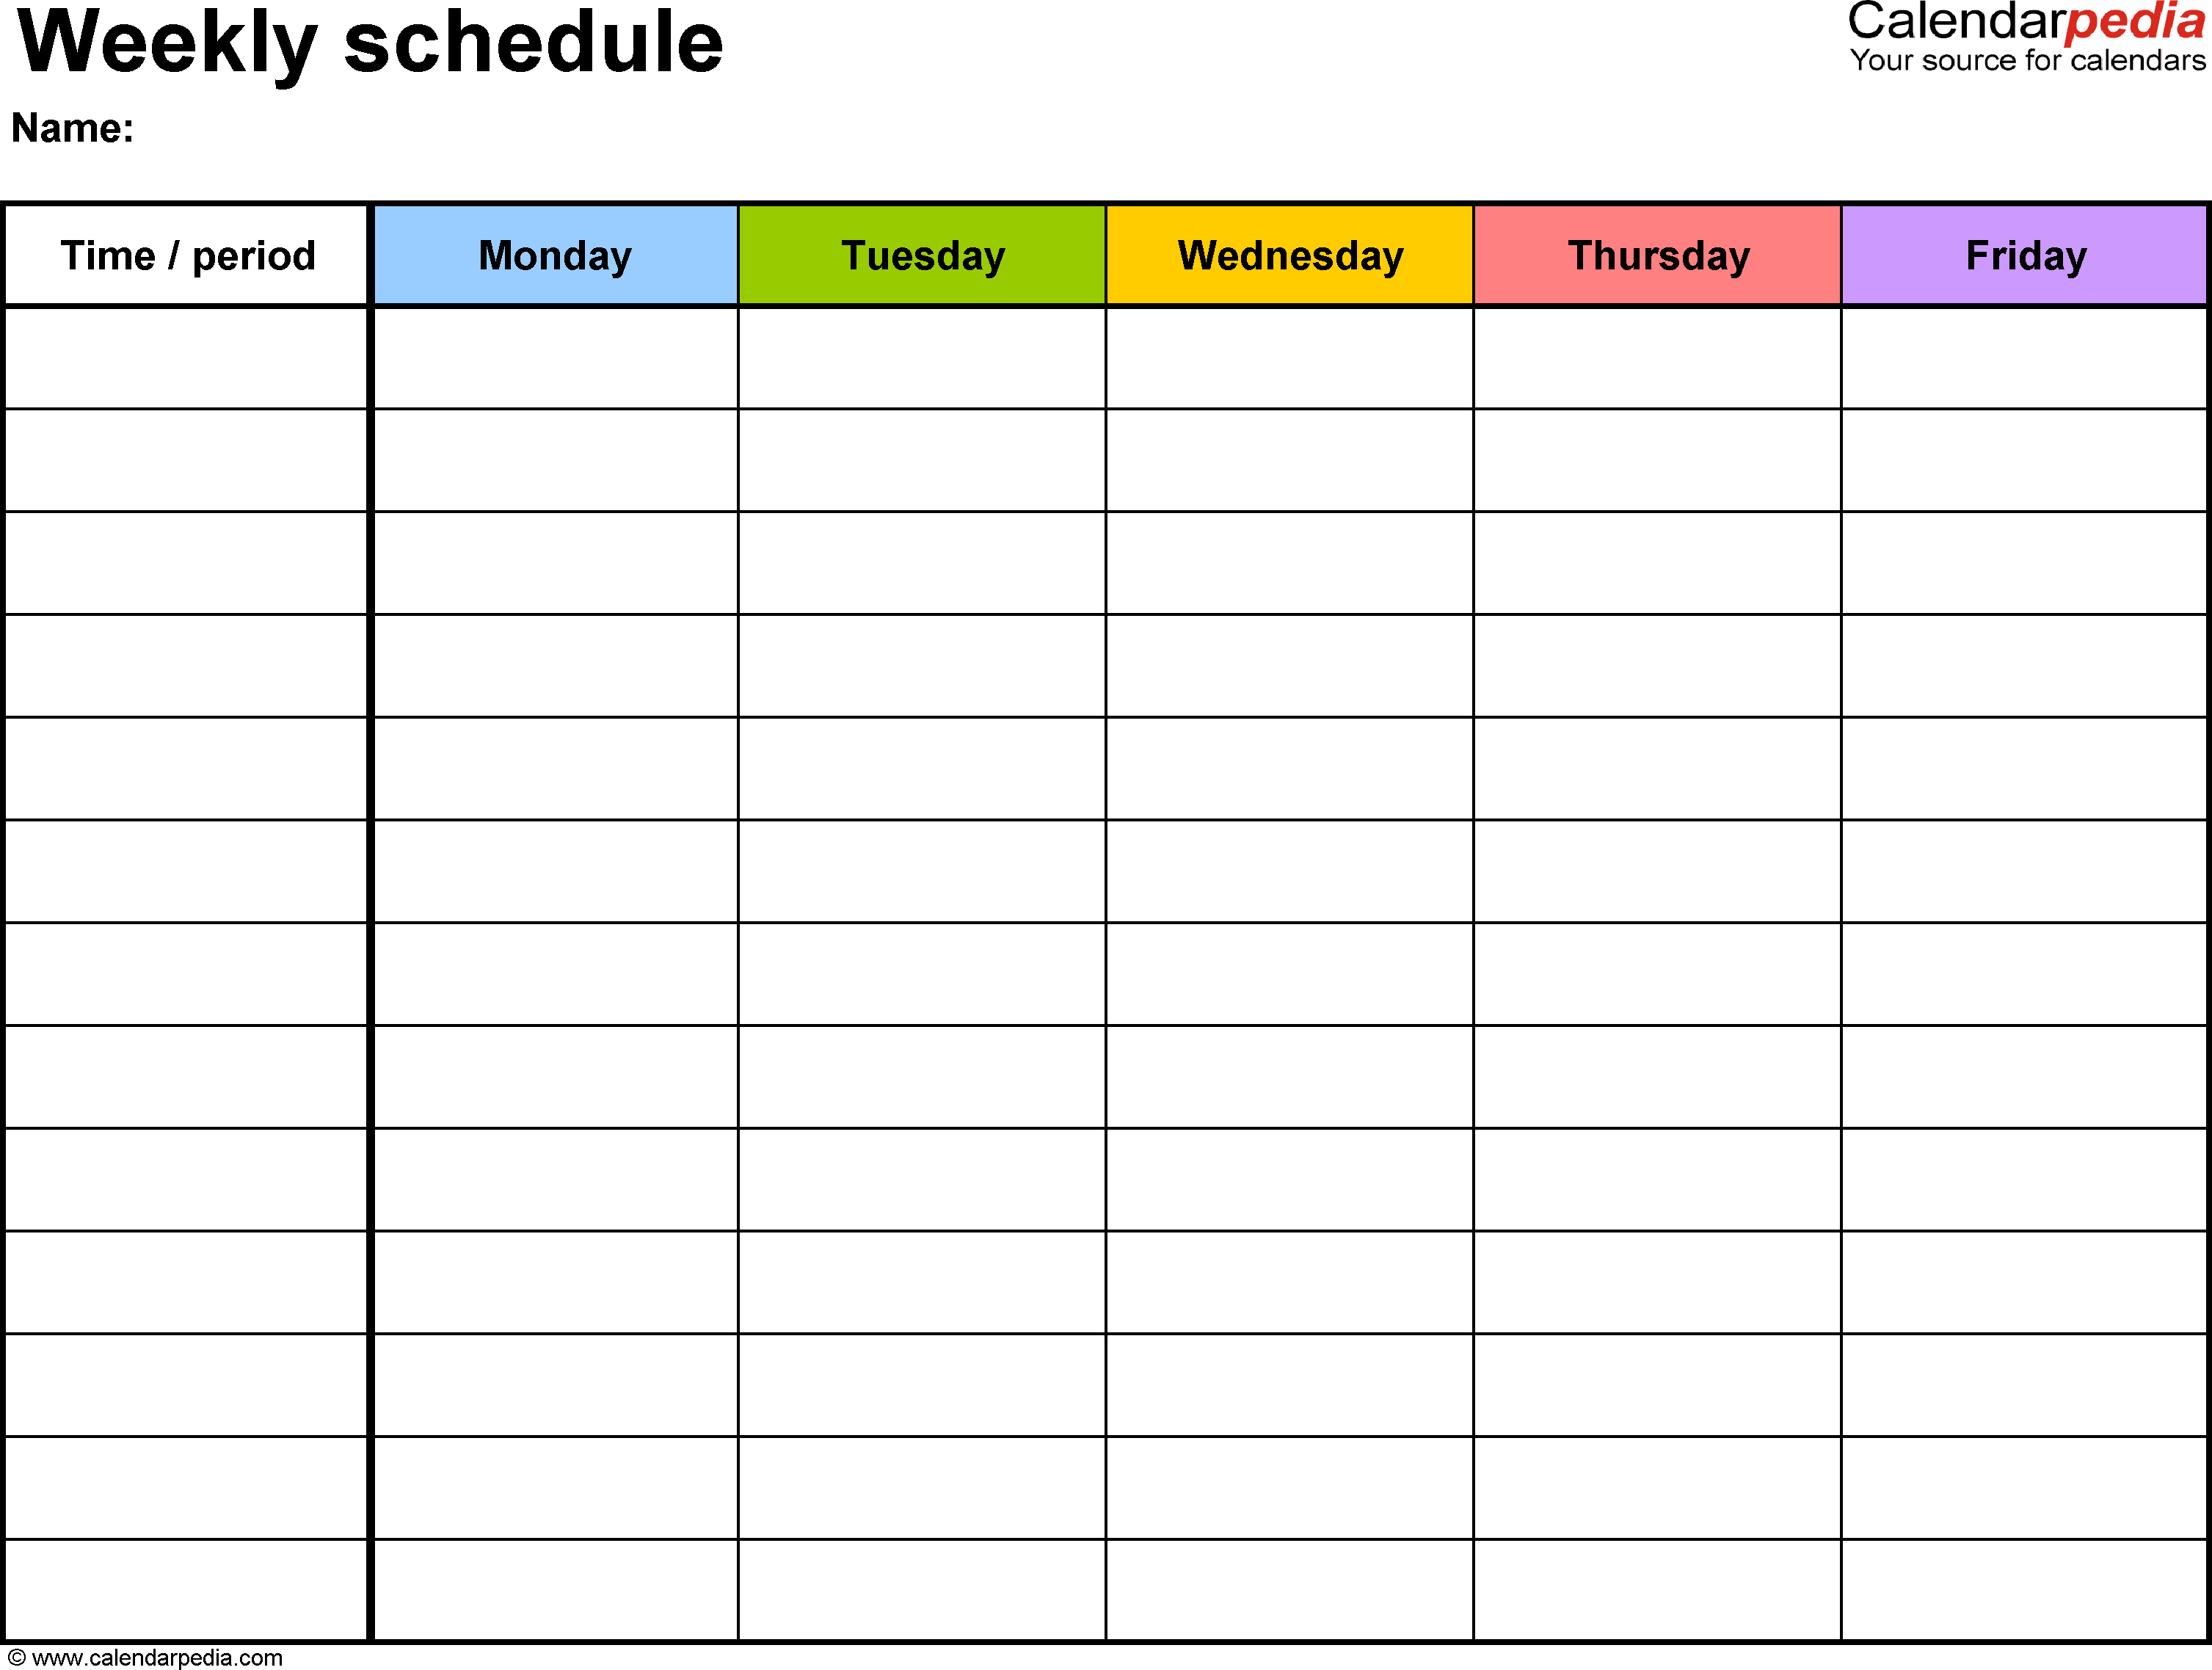 Free Weekly Schedule Templates For Excel - 18 Templates for Weekly Calendar Templates Excel